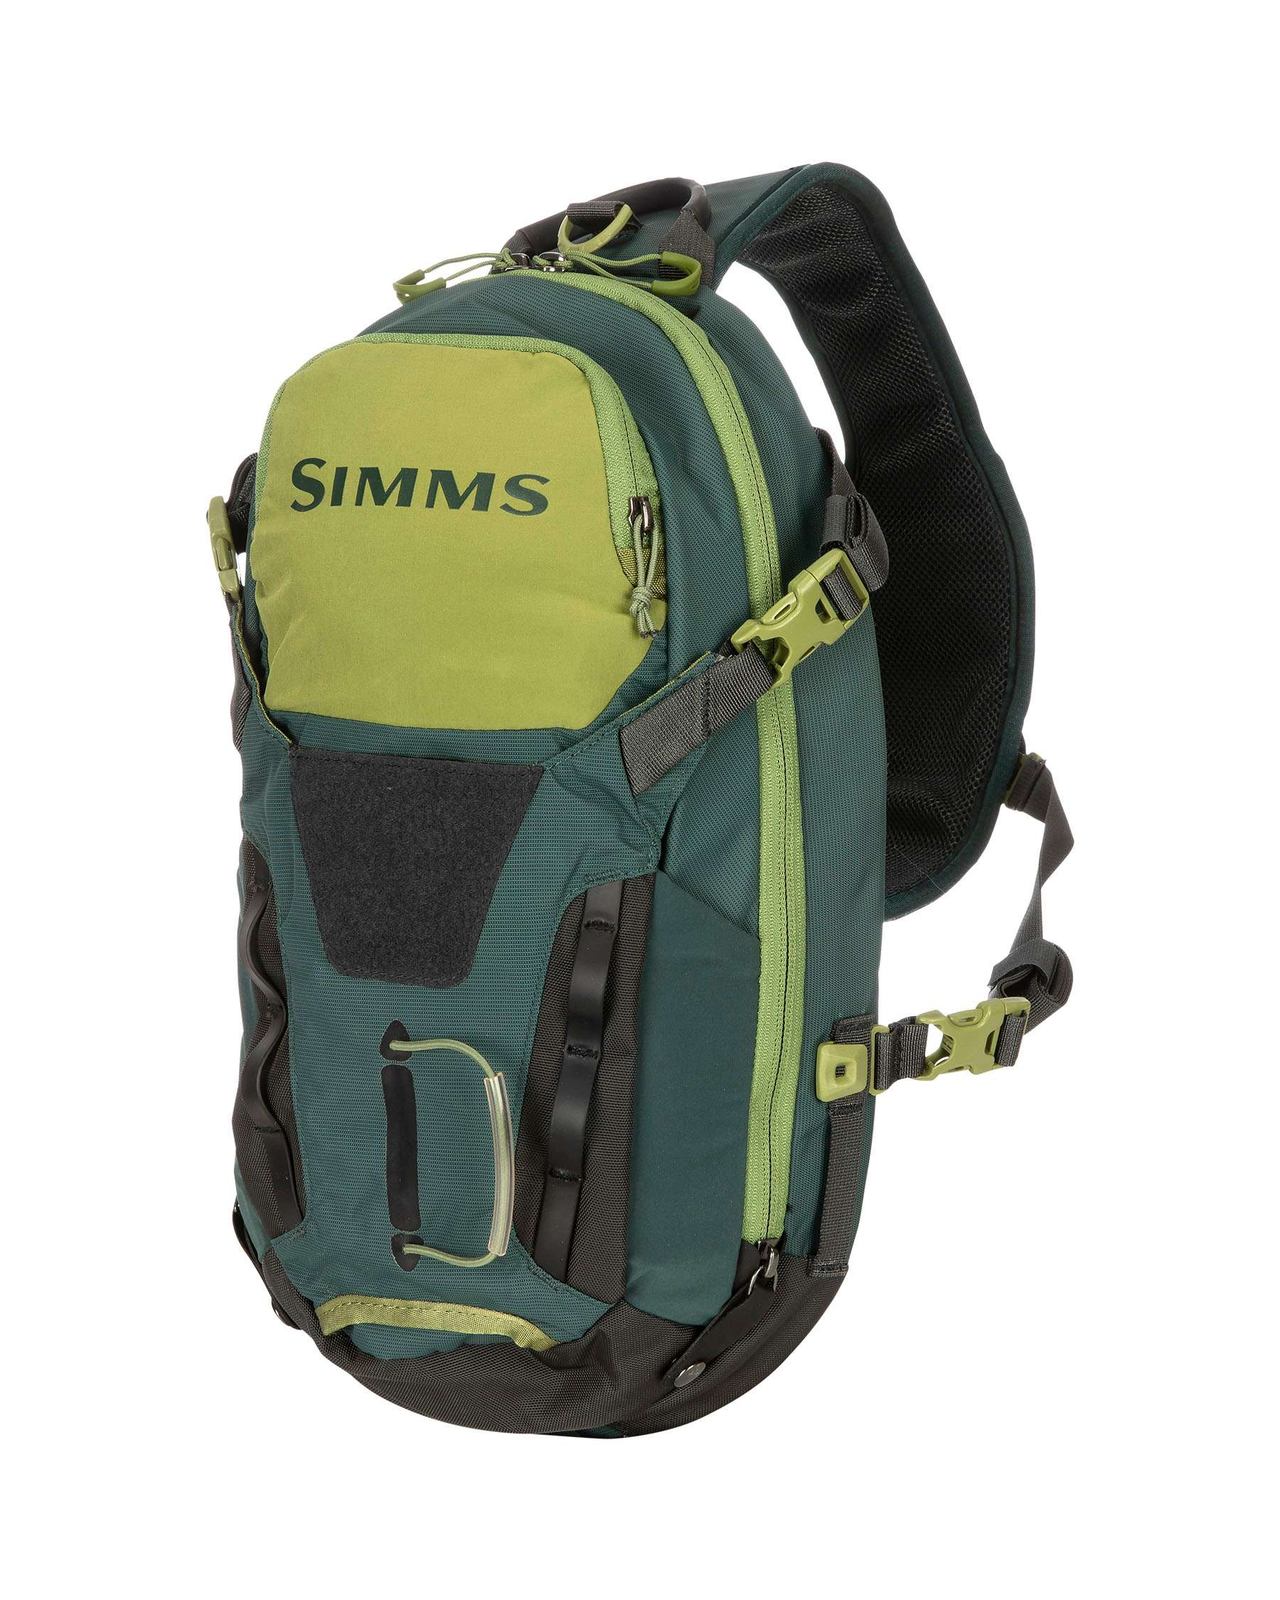 simms-Freestone-Ambi-Tactical-Sling-Pack-Shadow-Green-2021